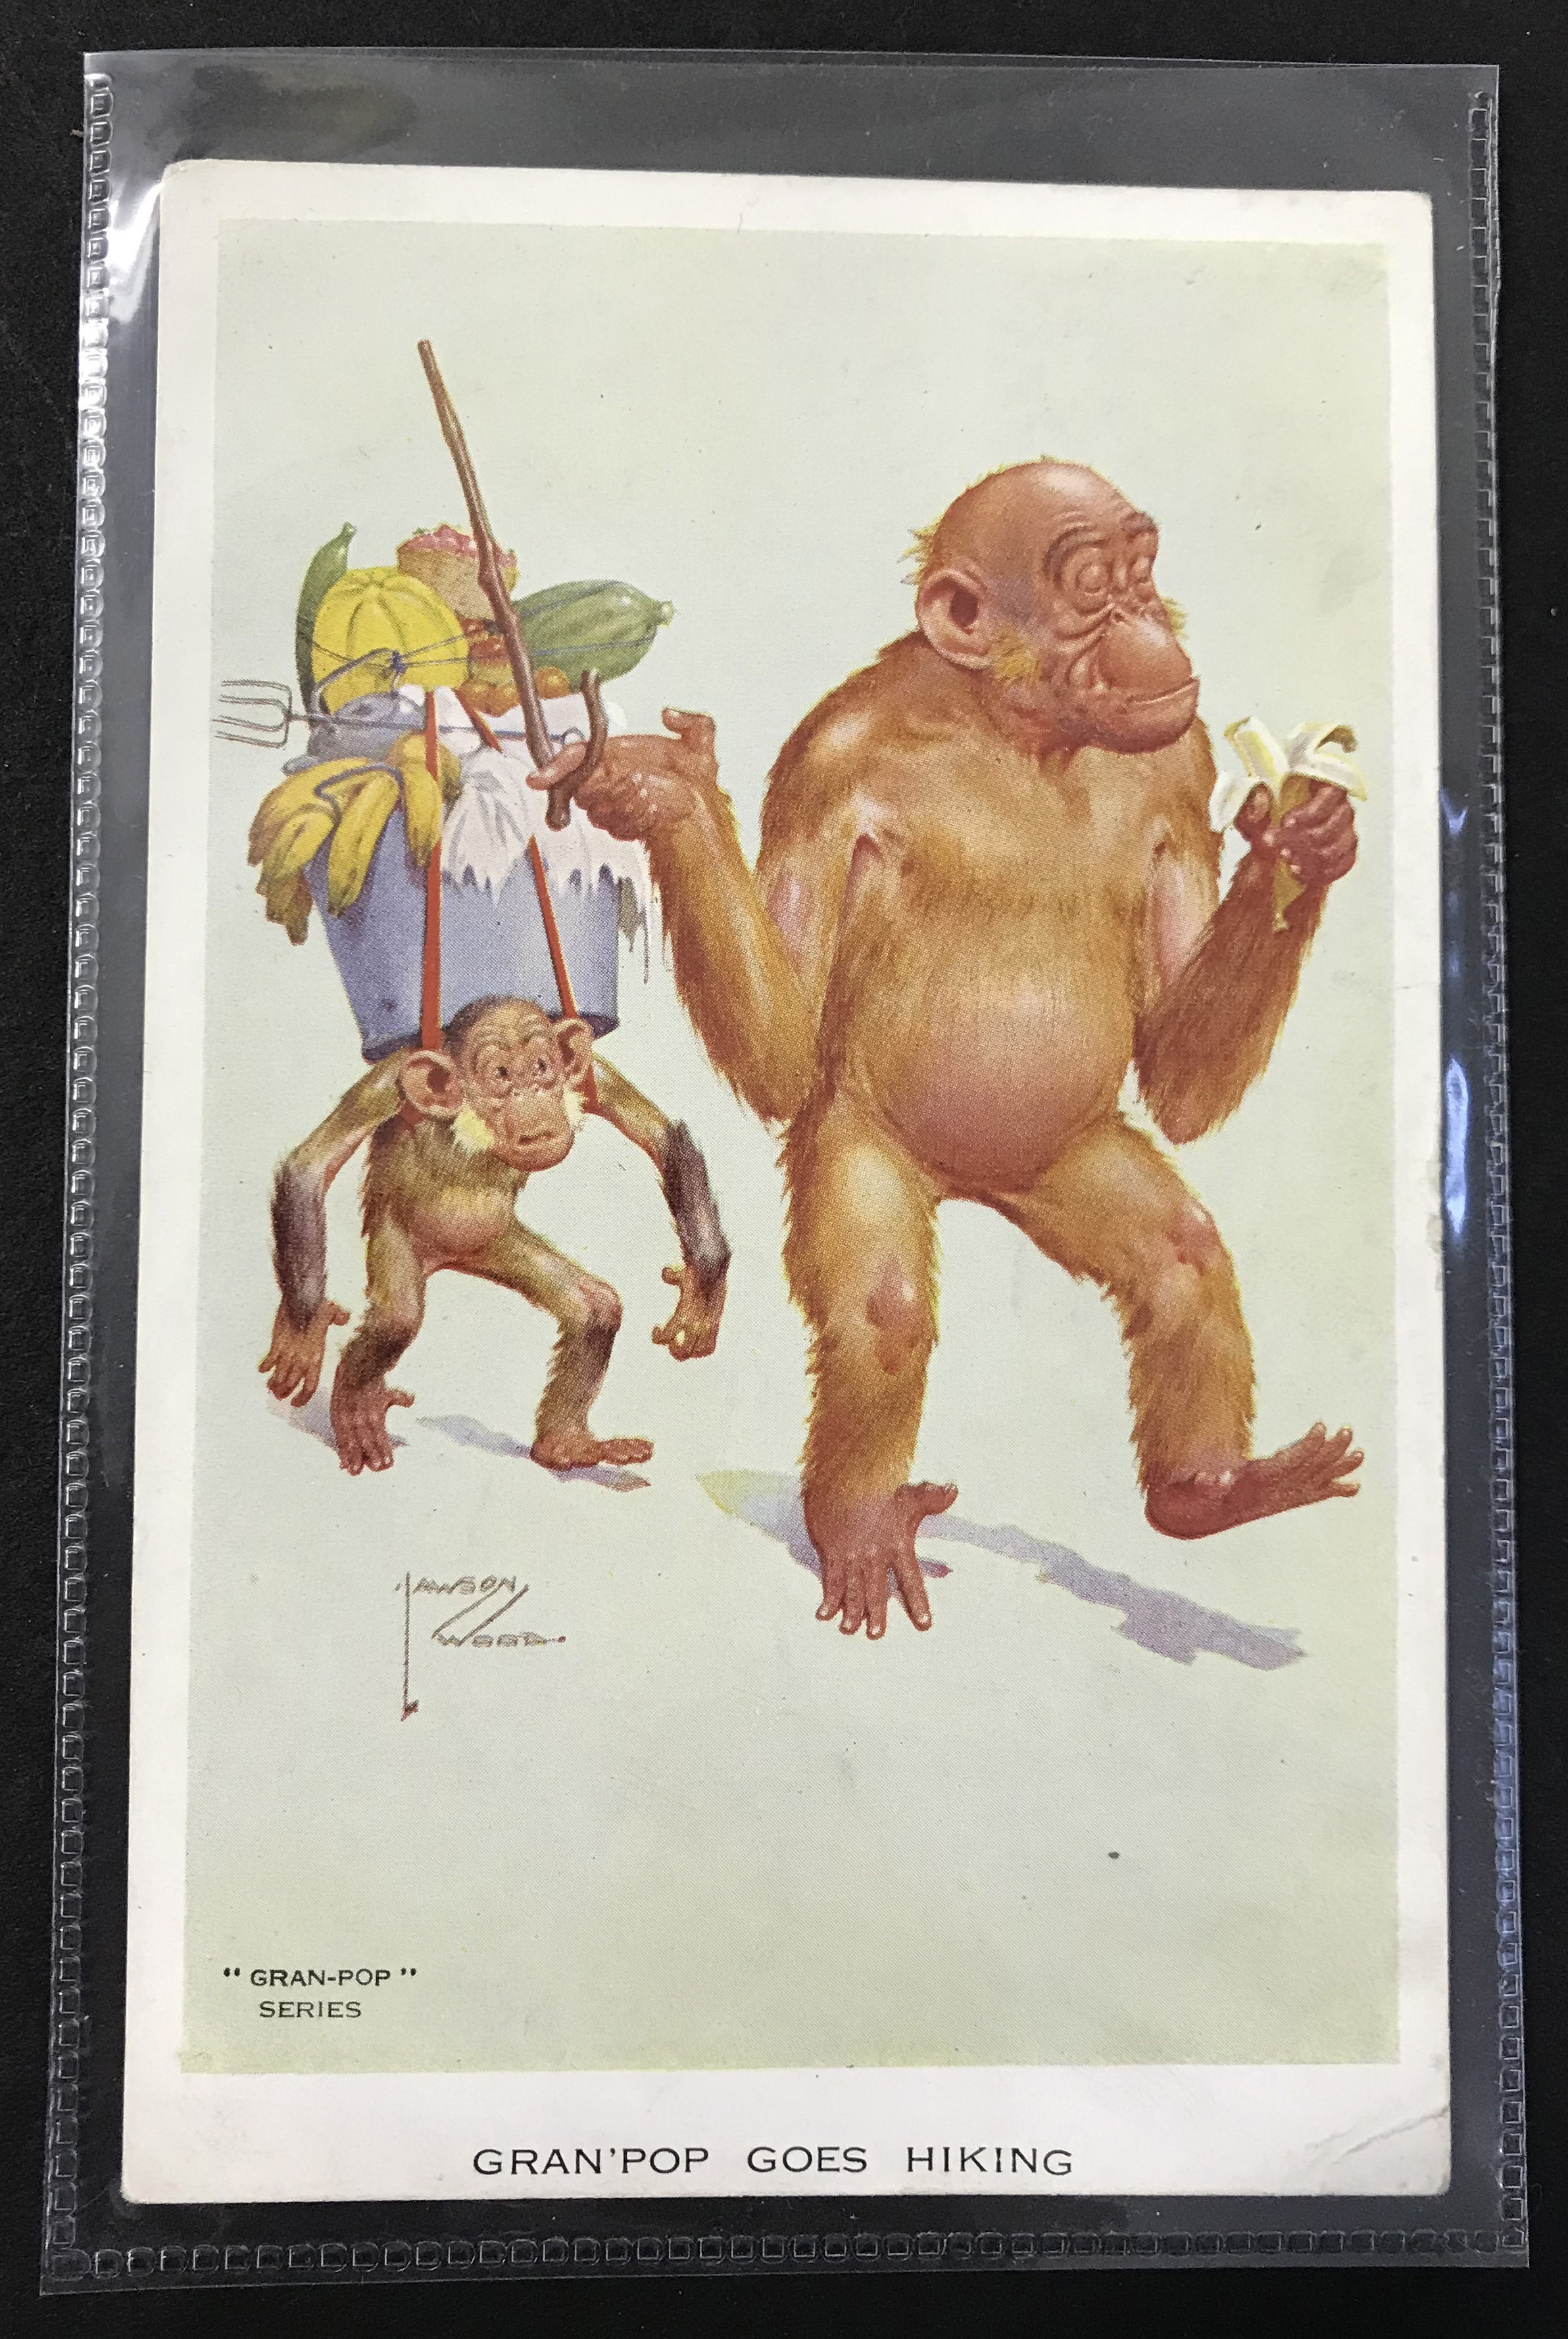 Lot 45 - SMALL GROUP OF LAWSON WOOD POSTCARDS FROM GRAN POP SERIES